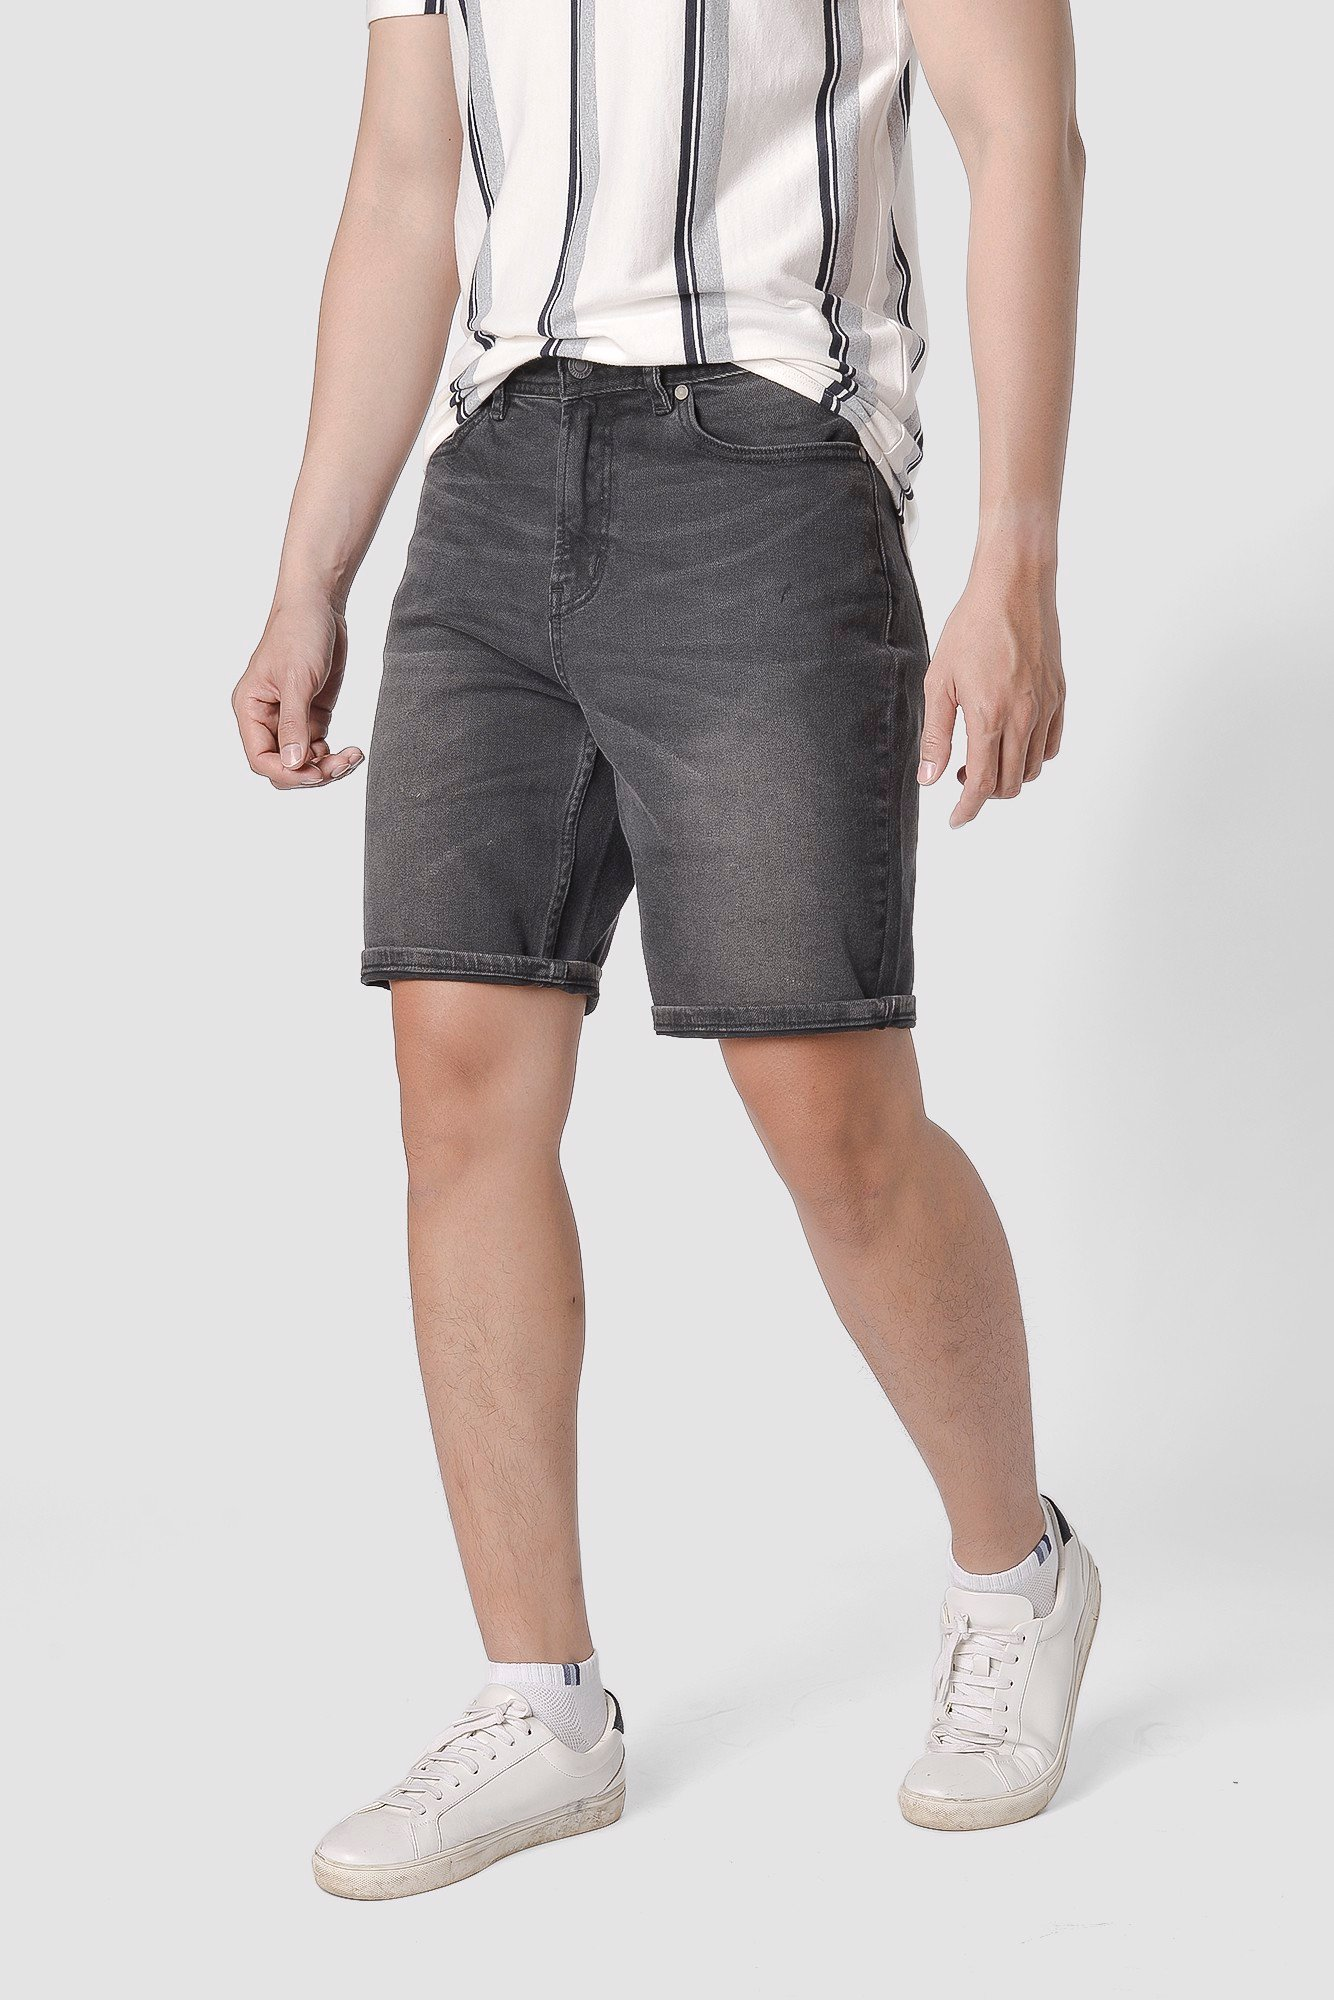 Quần short jeans nam form straight - 10F20DPS007